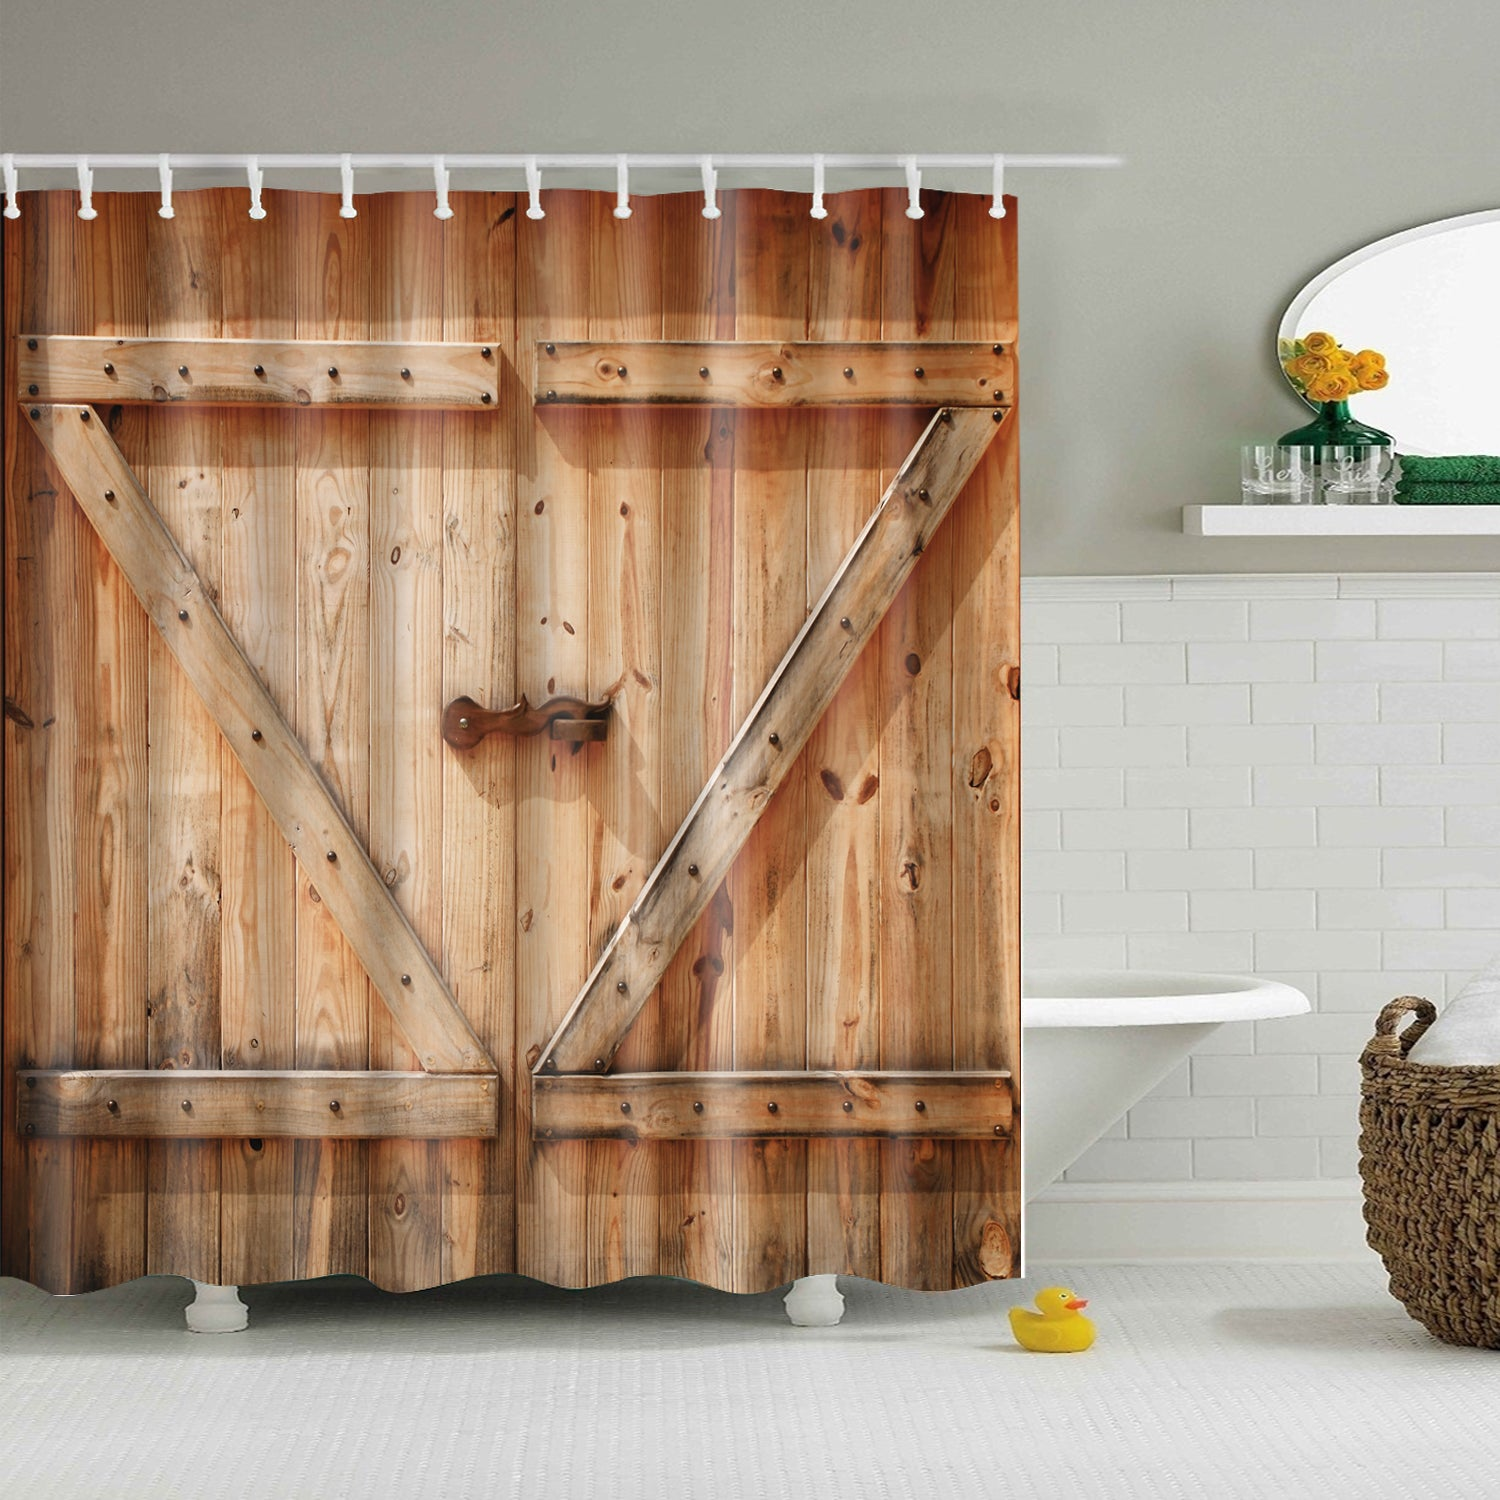 Low Z Plank Barn Door Print Shower Curtain